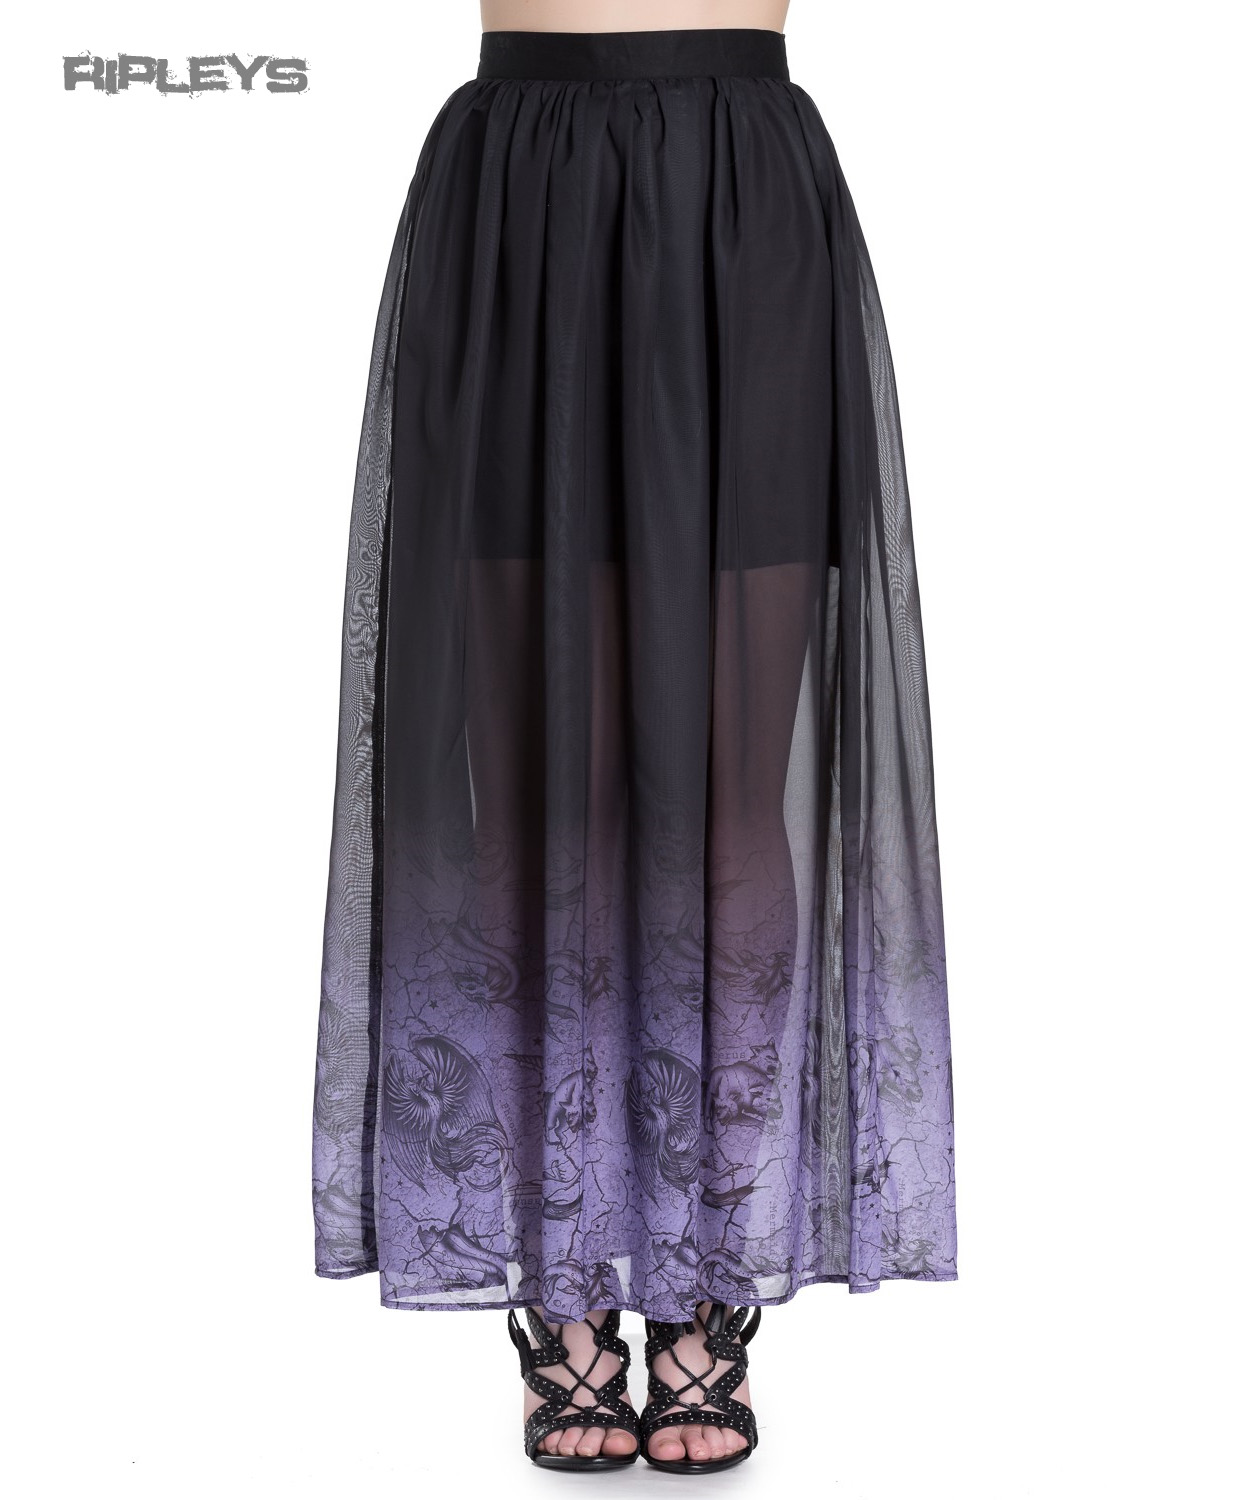 Hell-Bunny-Spin-Doctor-Goth-Purple-Mystical-EVADINE-Maxi-Skirt-All-Sizes thumbnail 10